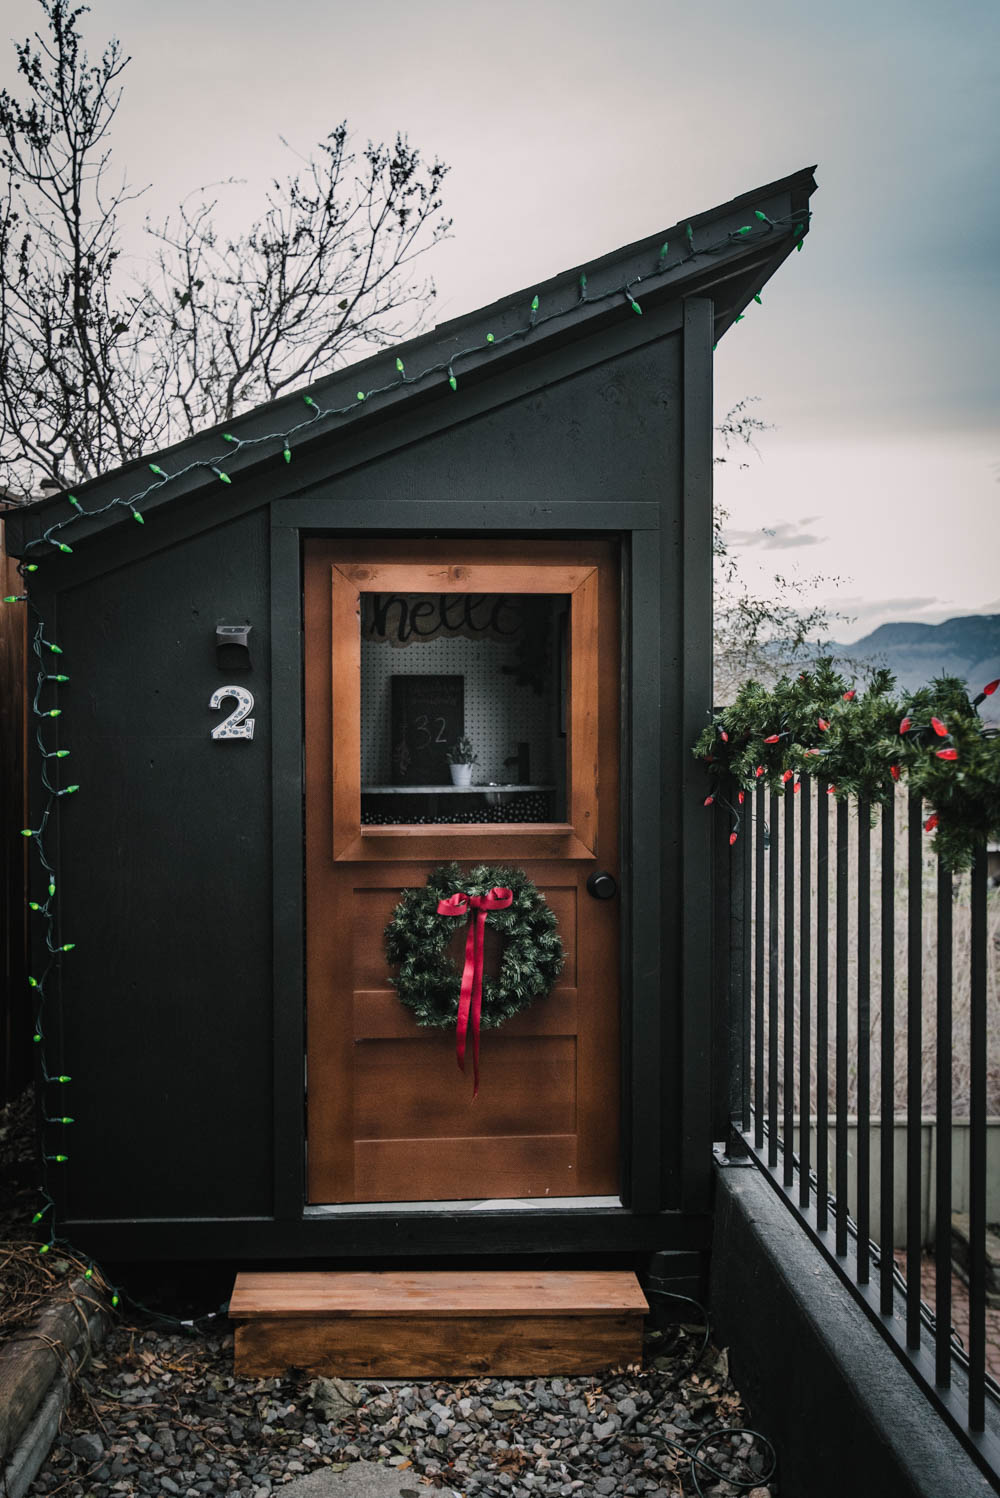 Modern Holiday Decor for a kids playhouse